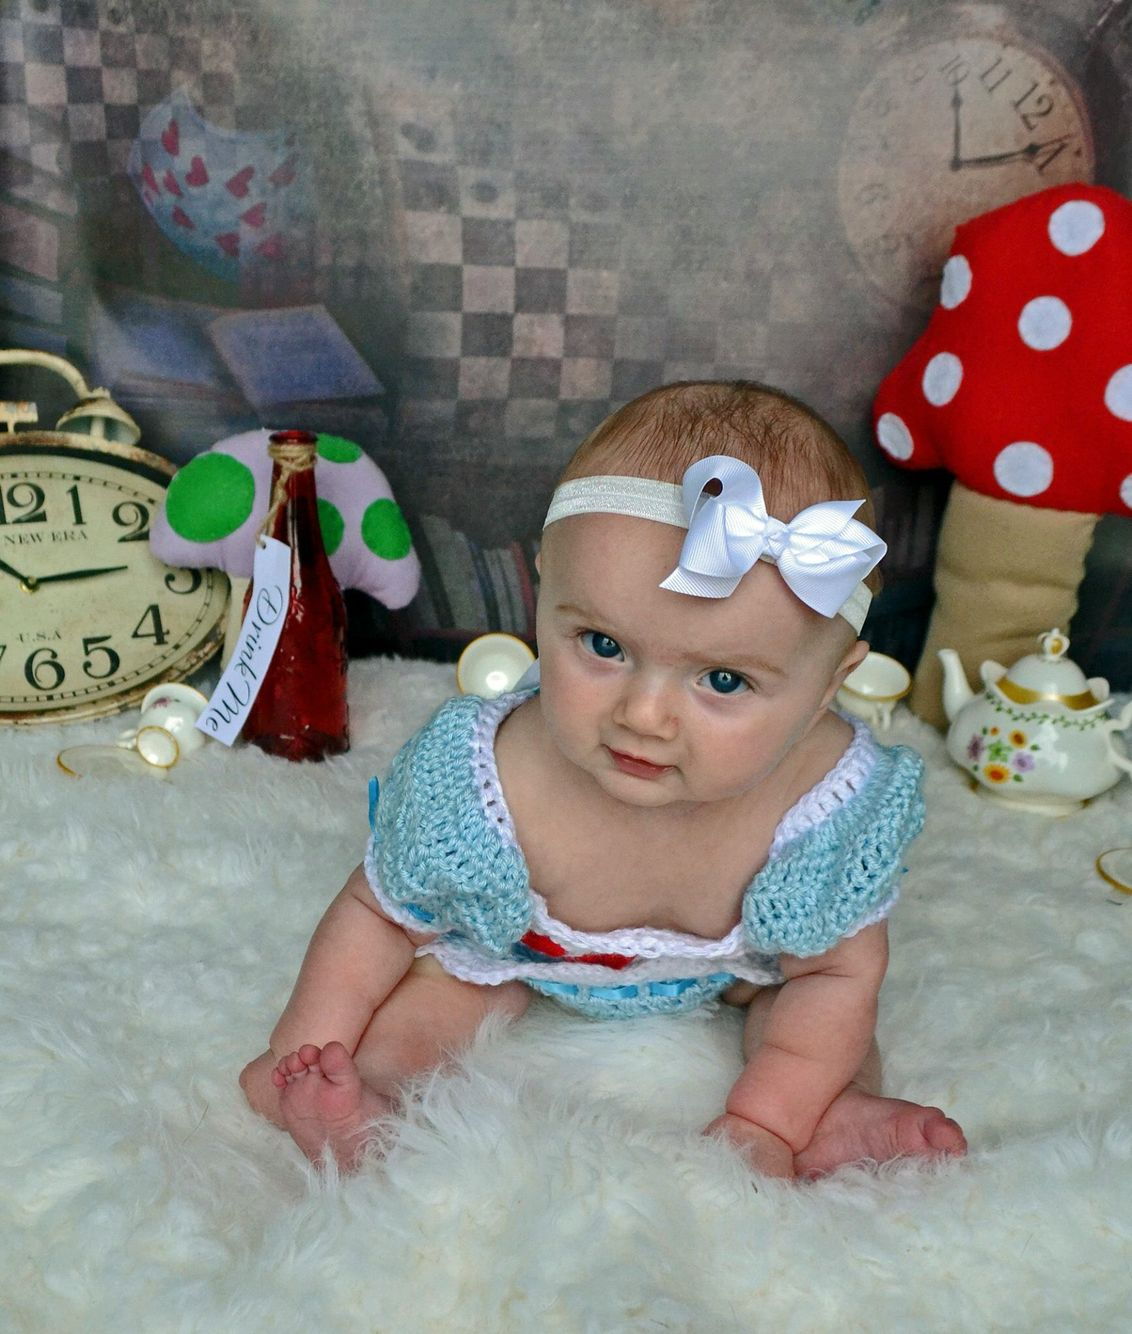 Disney photoshoot by jenna bee photography 5 month etsy baby photoshoot alice in wonderland